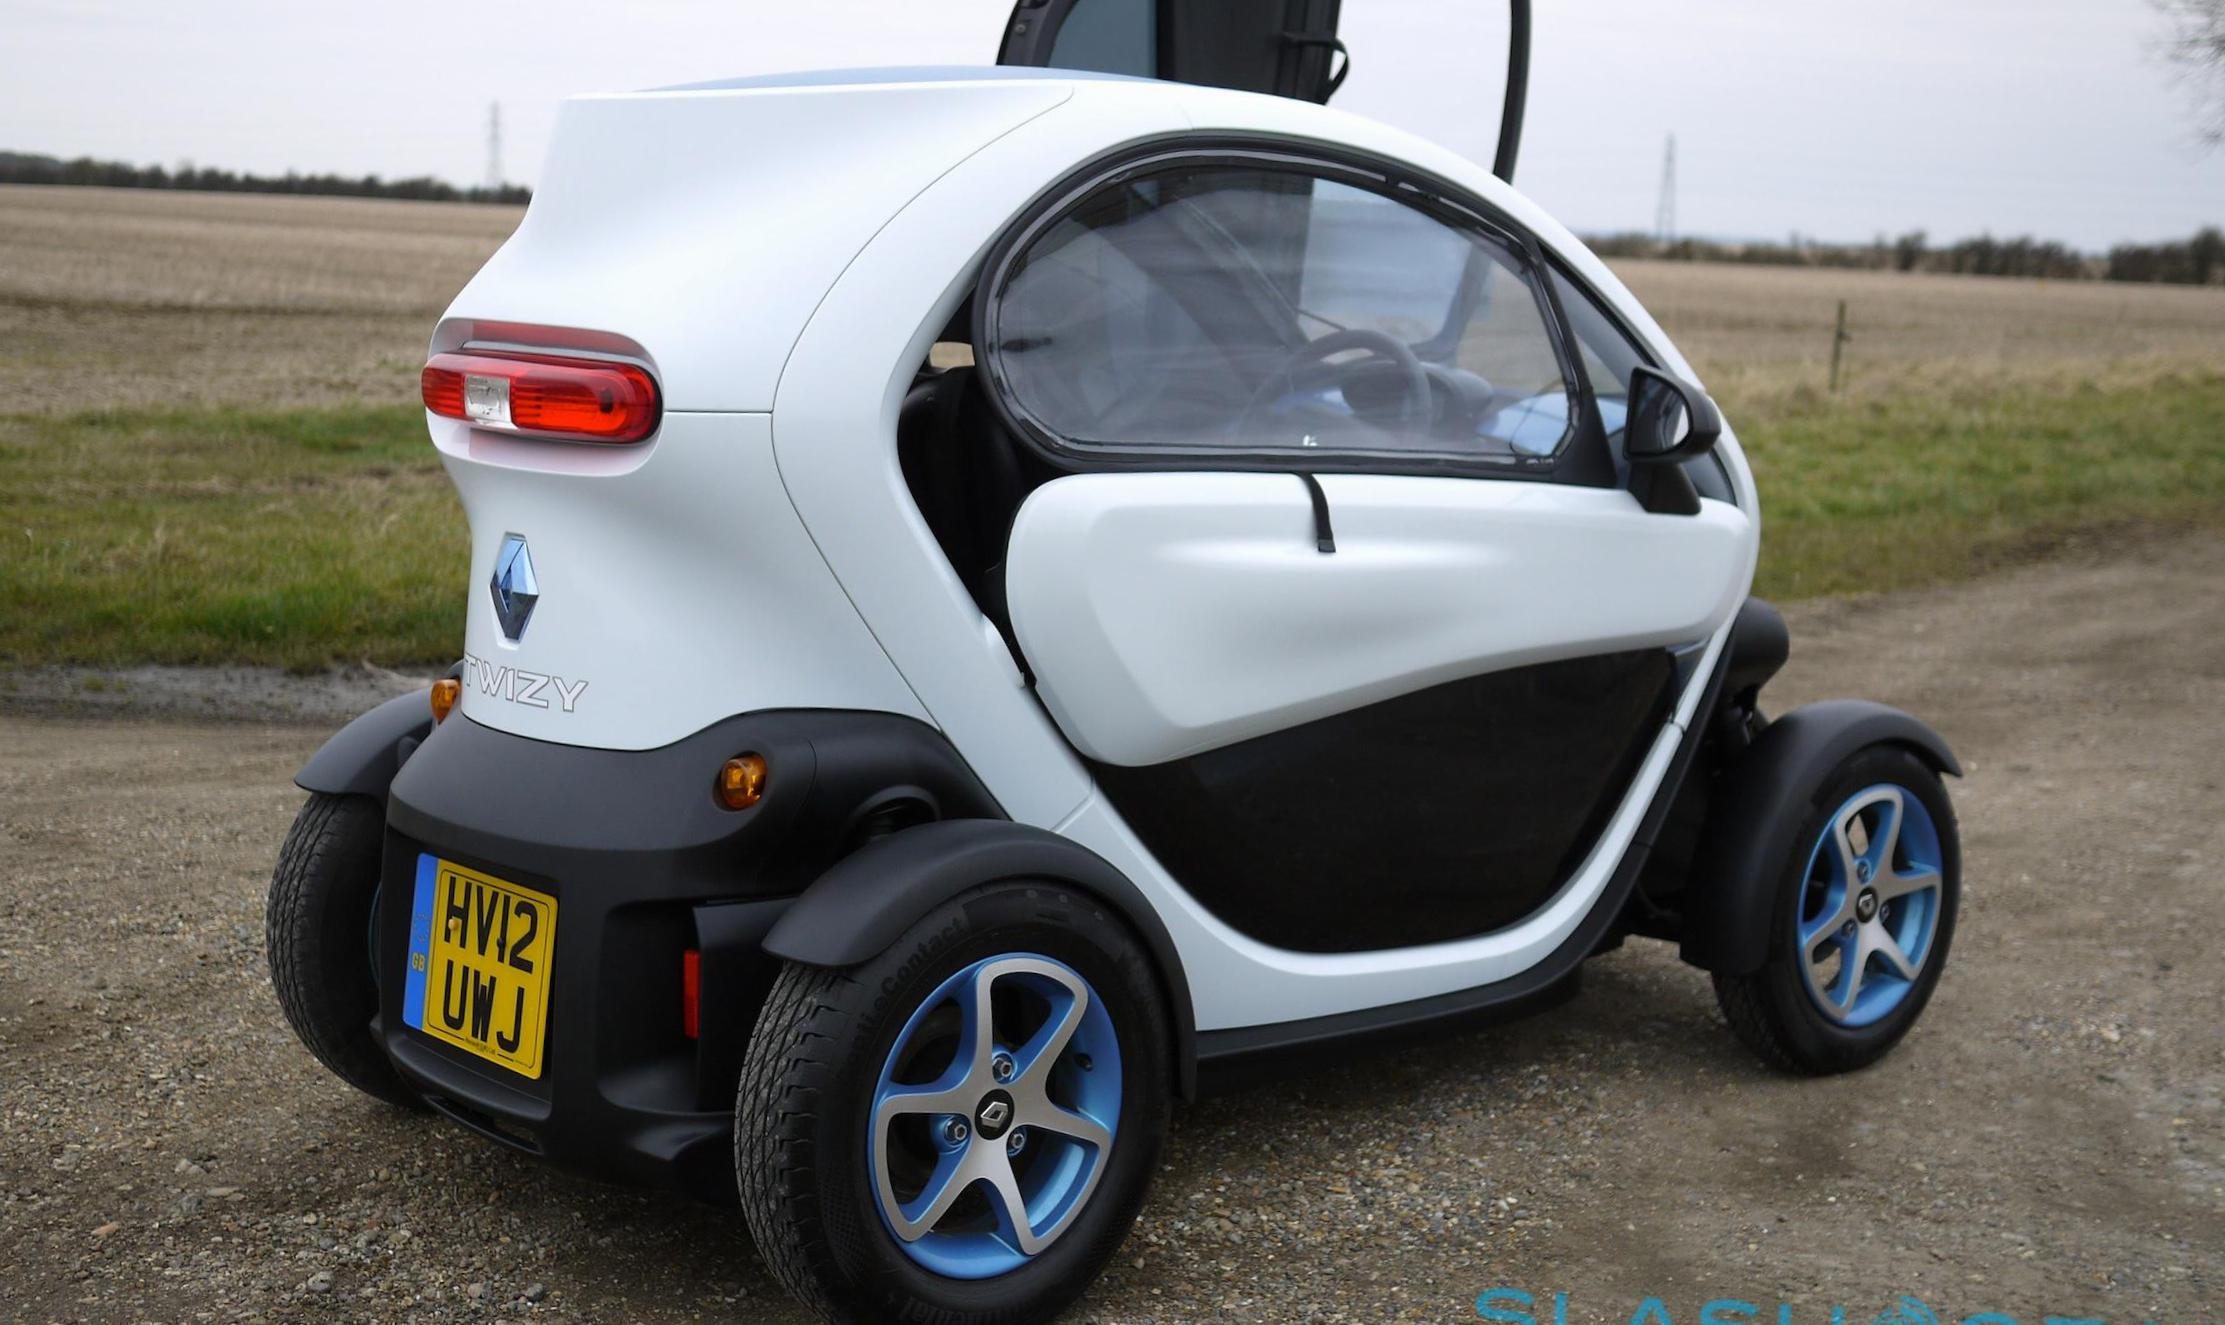 Twizy Renault approved 2014